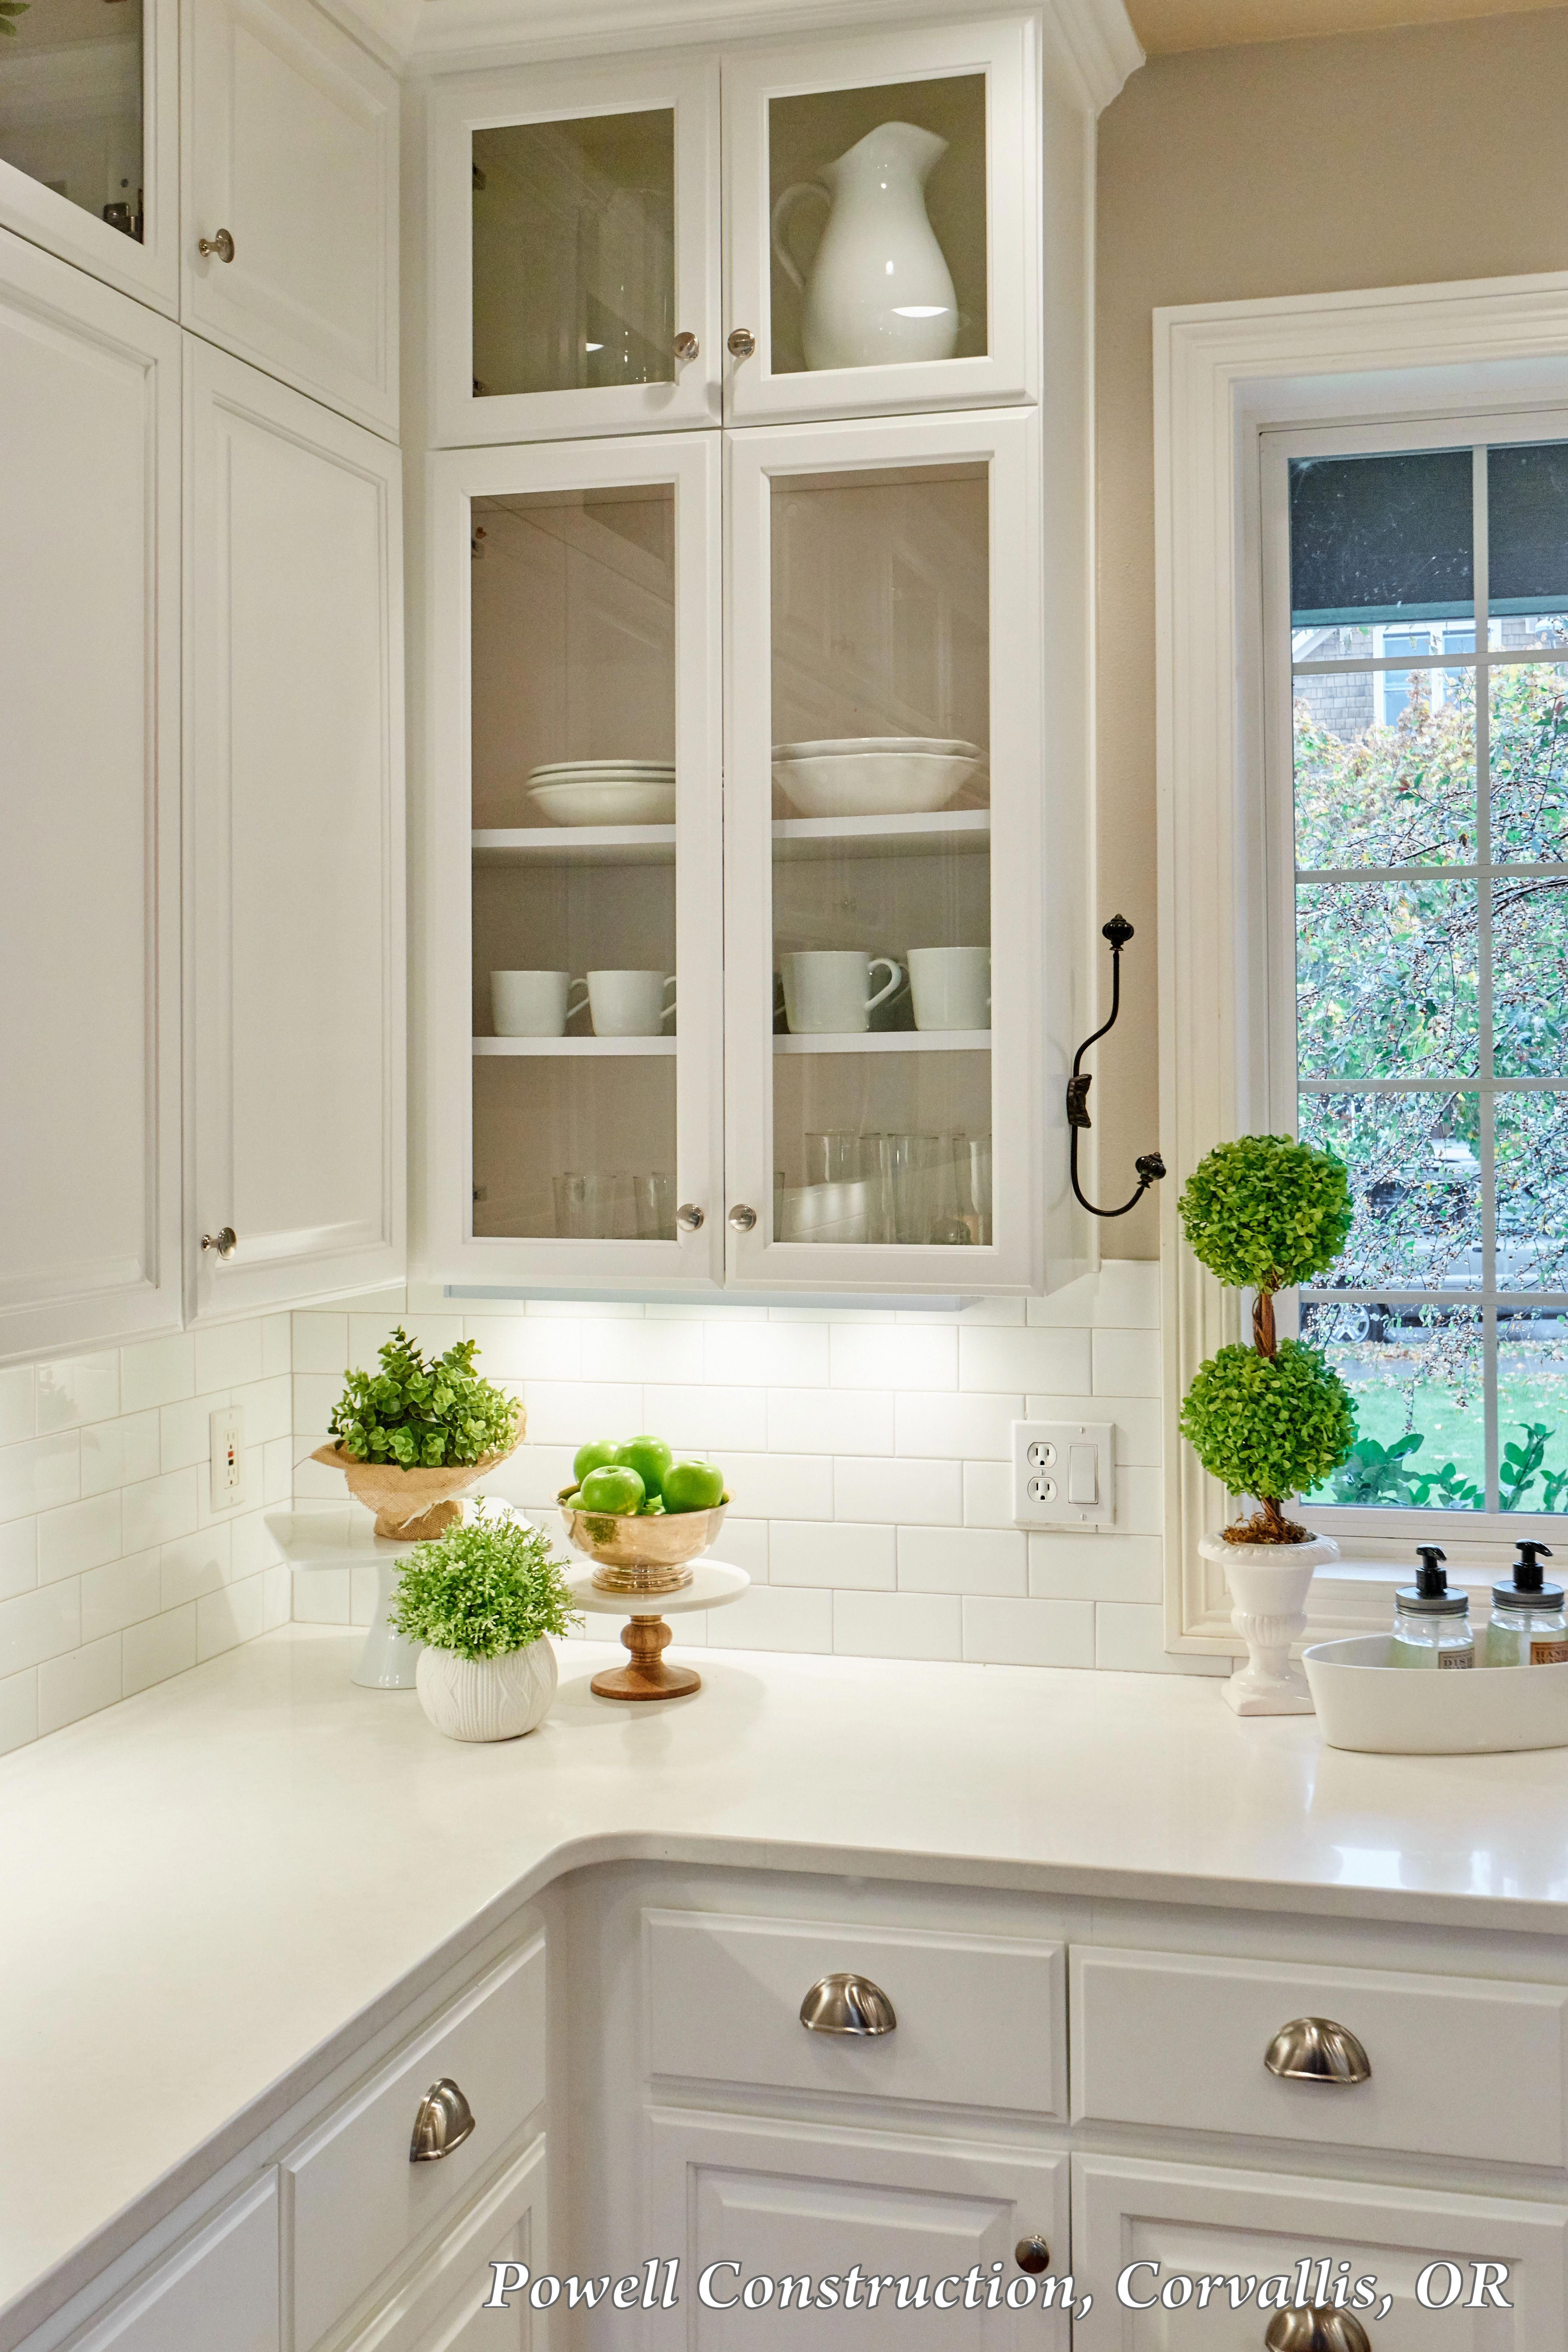 - This Classic White Kitchen With Fresh Accents And Open, Glass